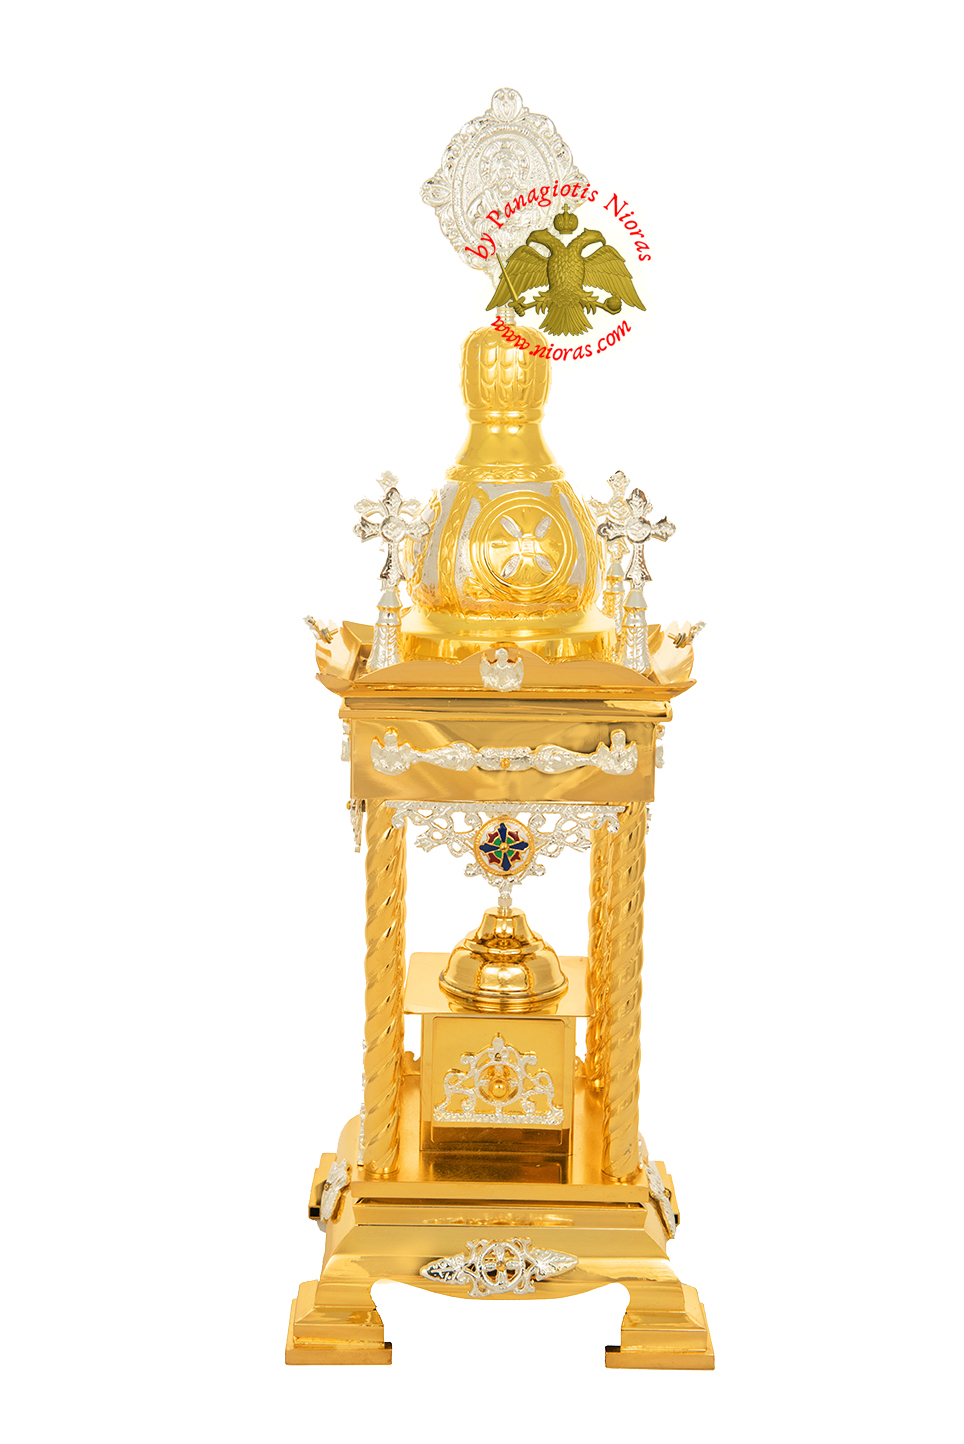 Holy Table Orthodox Tabernacle With Metal Decorations Gold and Silver Plated